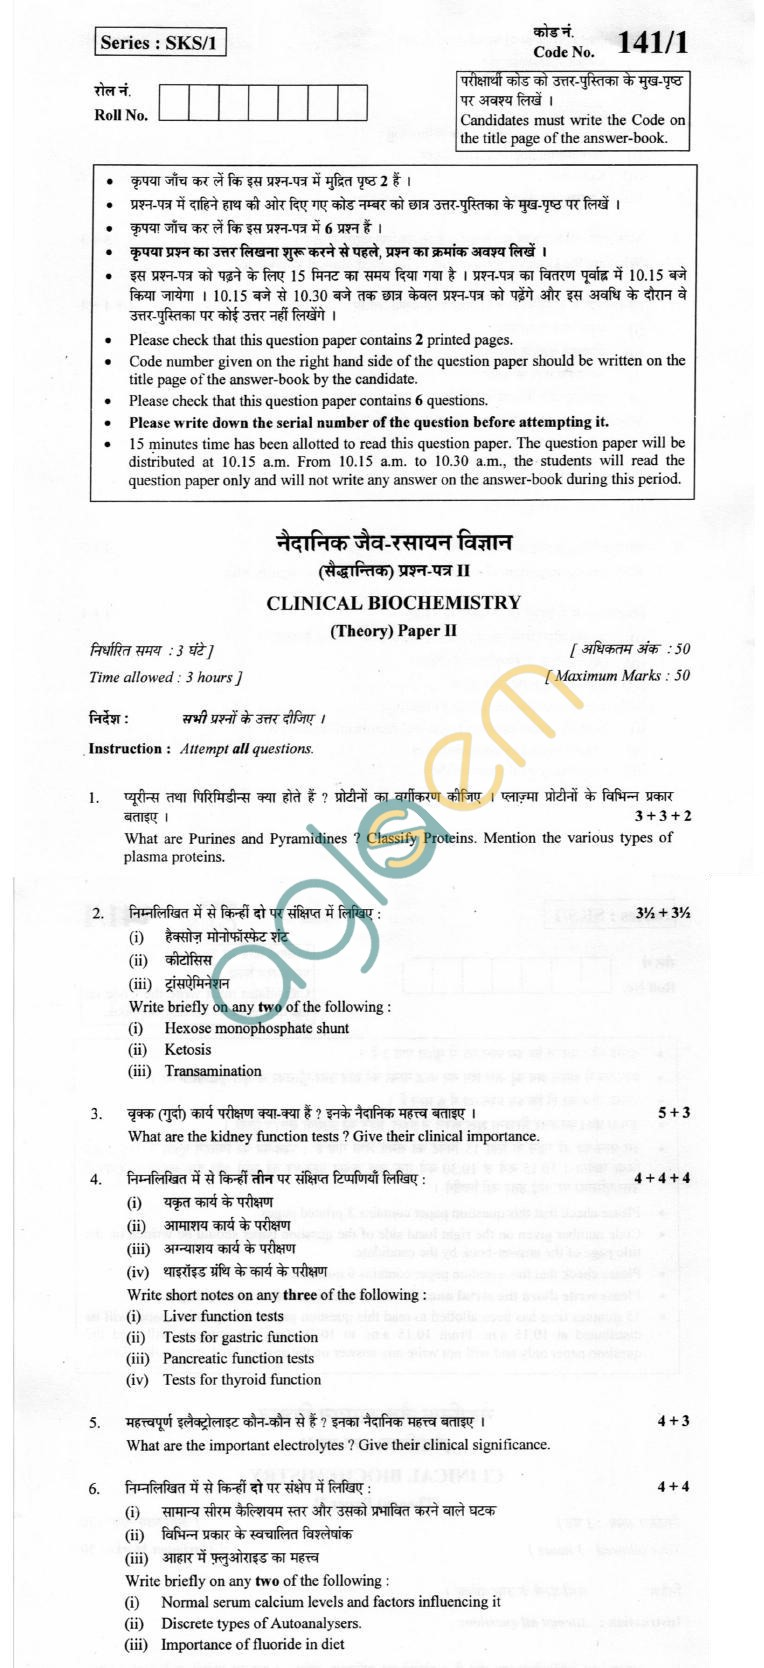 CBSE Board Exam 2013 Class XII Question Paper - Clinical Biochemistry Paper II